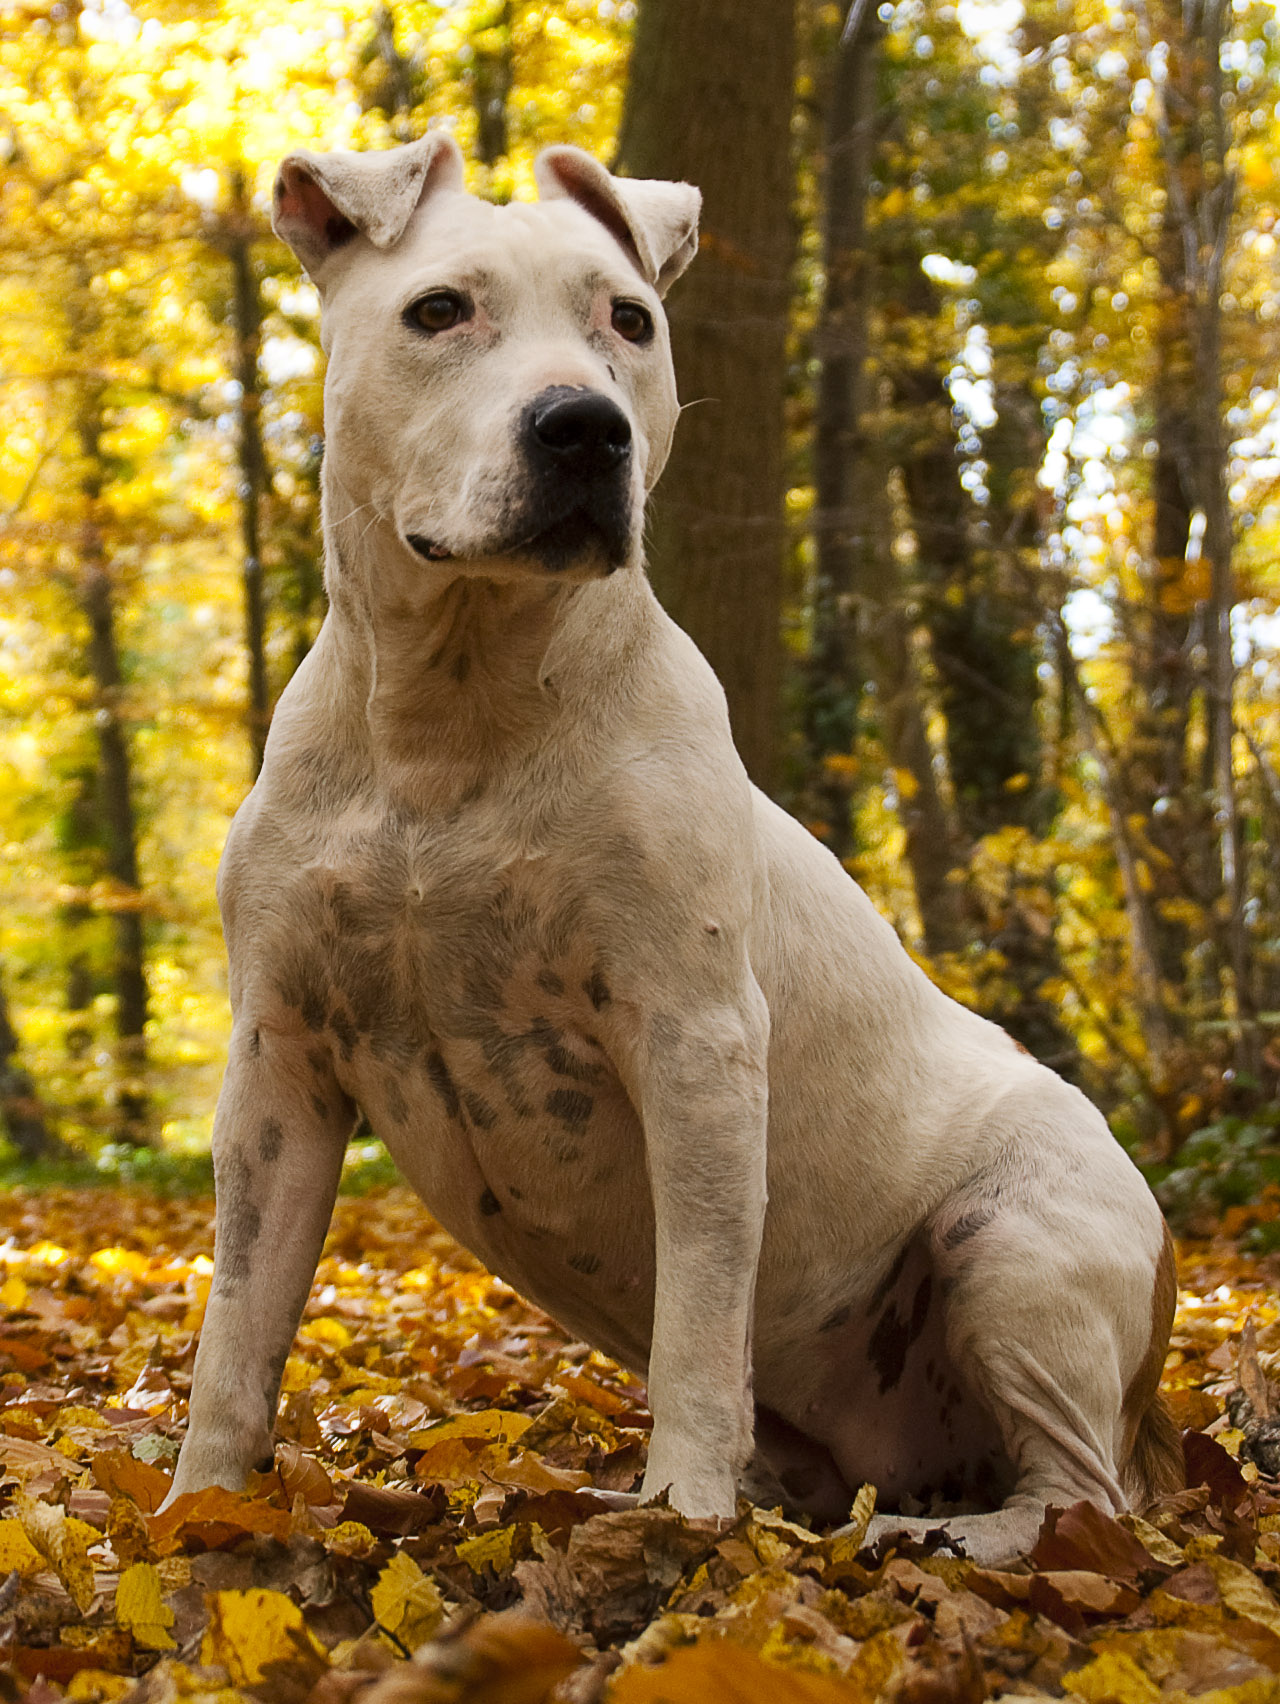 All Pit Bull Dogs Should Be Eutnanized Dangerous Breed